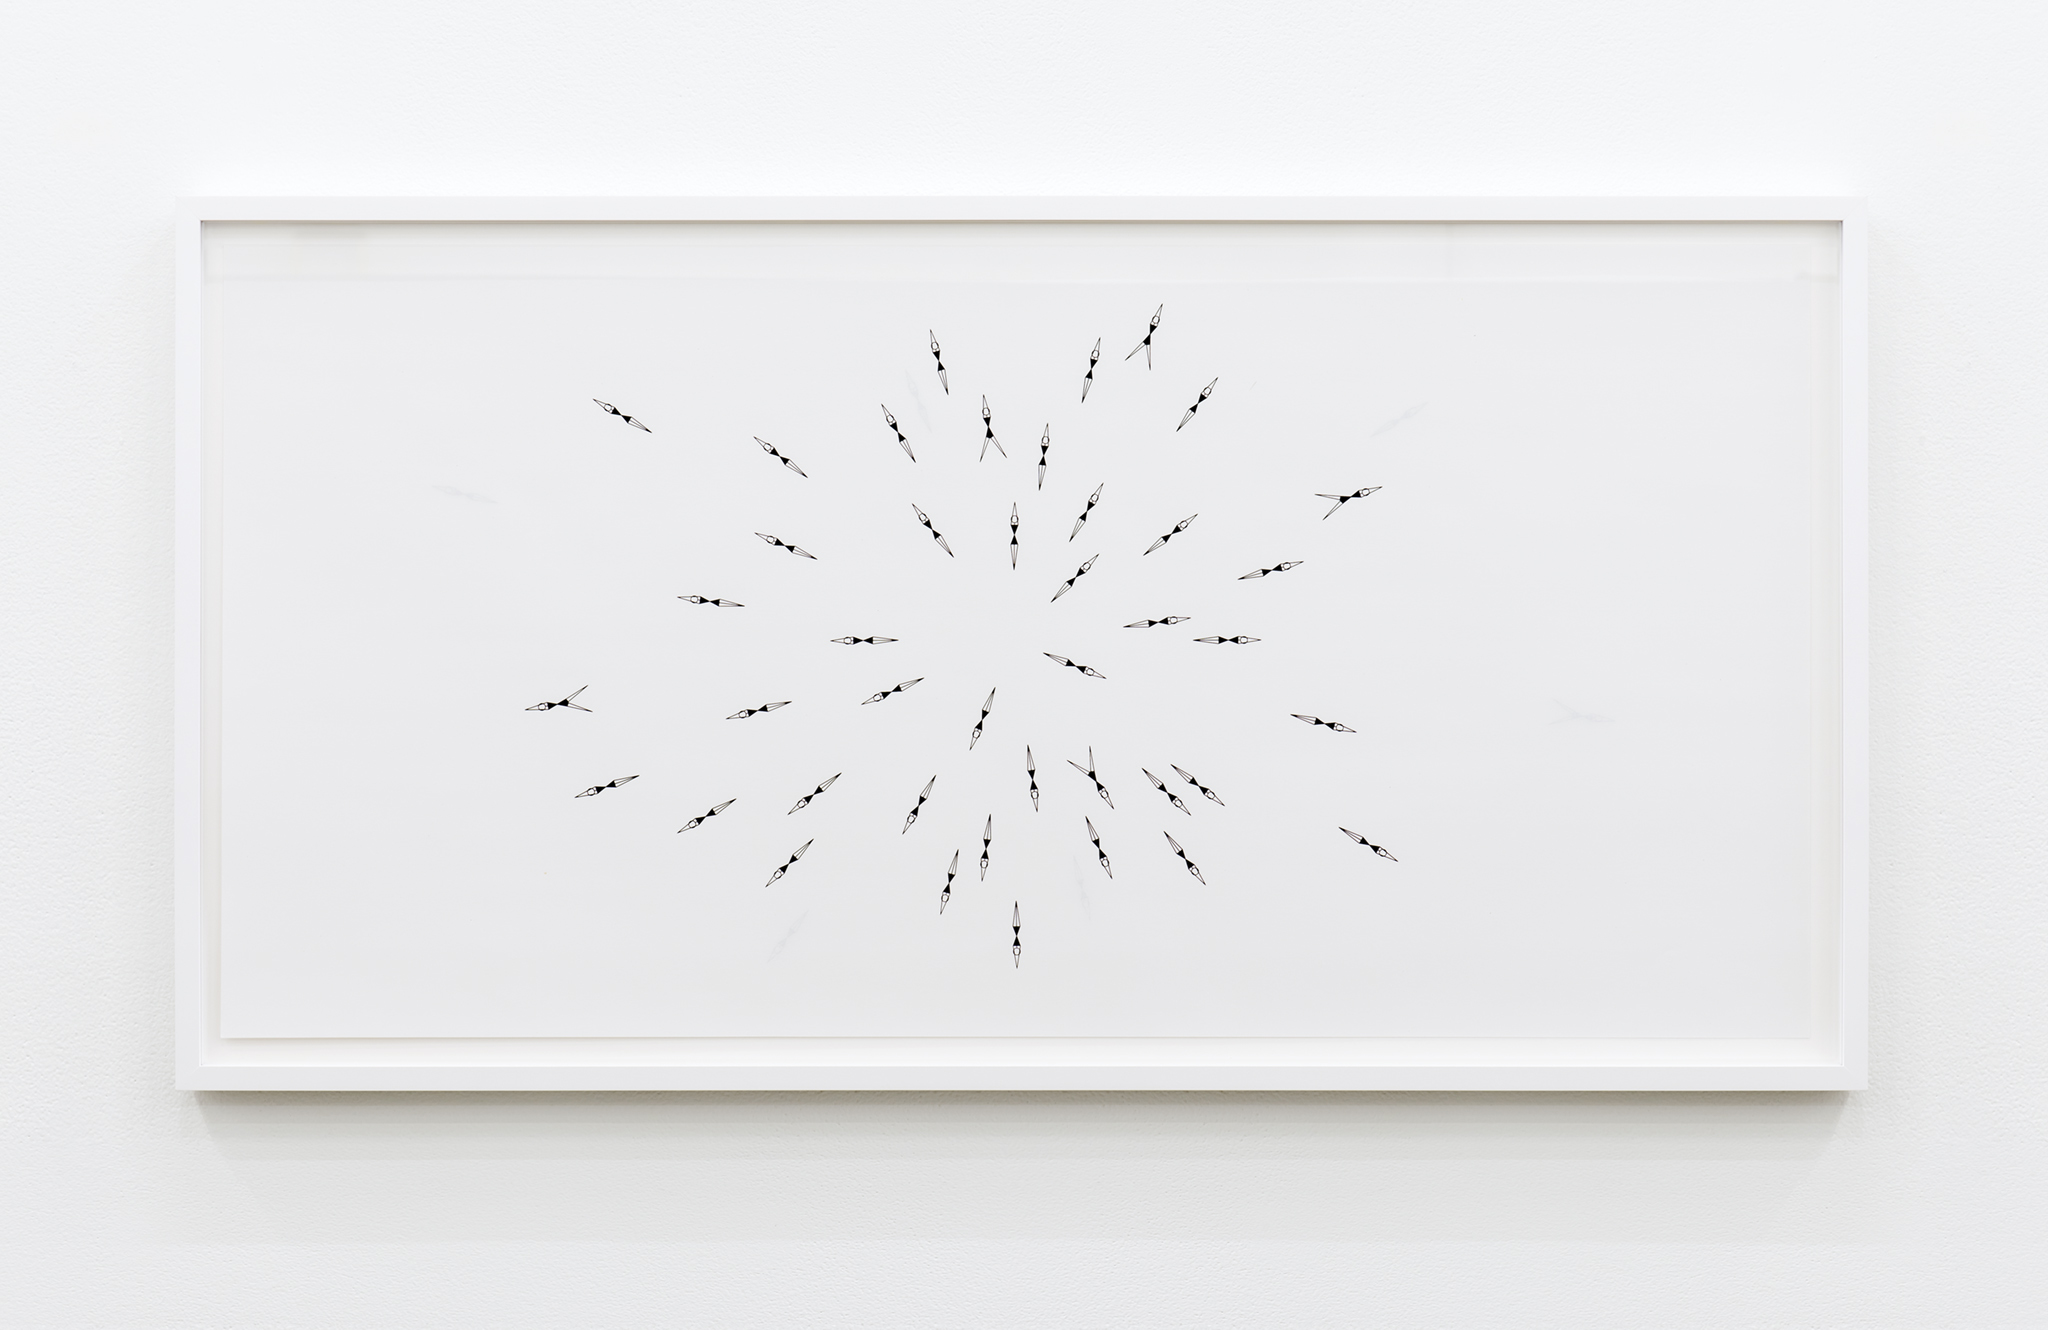 ​​​​​​​Janice Kerbel, Sync (Explode), 2017, double sided silkscreen print on paper, 33 x 17 in. (84 x 42 cm)​​​​​​​​​ by